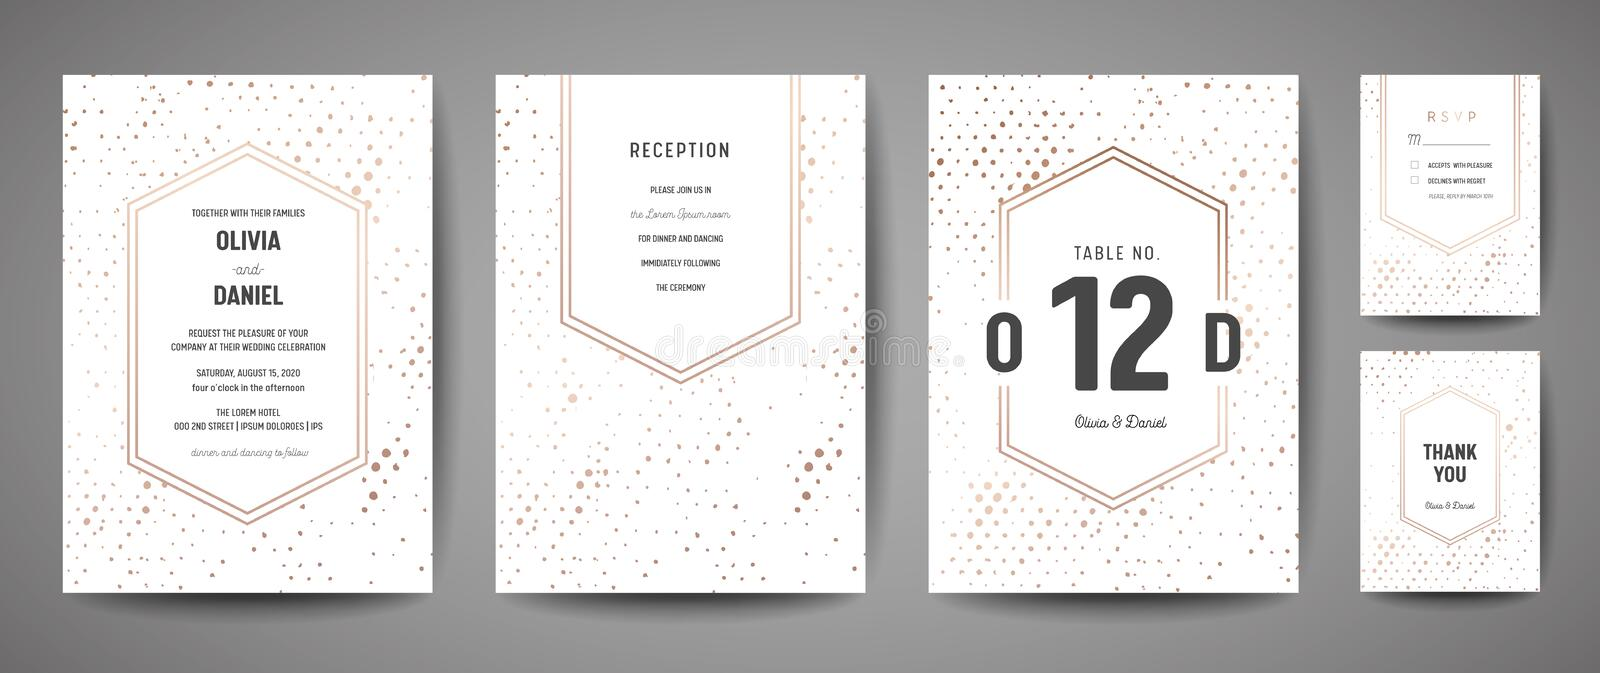 Luxury Wedding Save the Date, Invitation Cards Collection with Gold Foil Polka Dots and Monogram Logo design template vector illustration